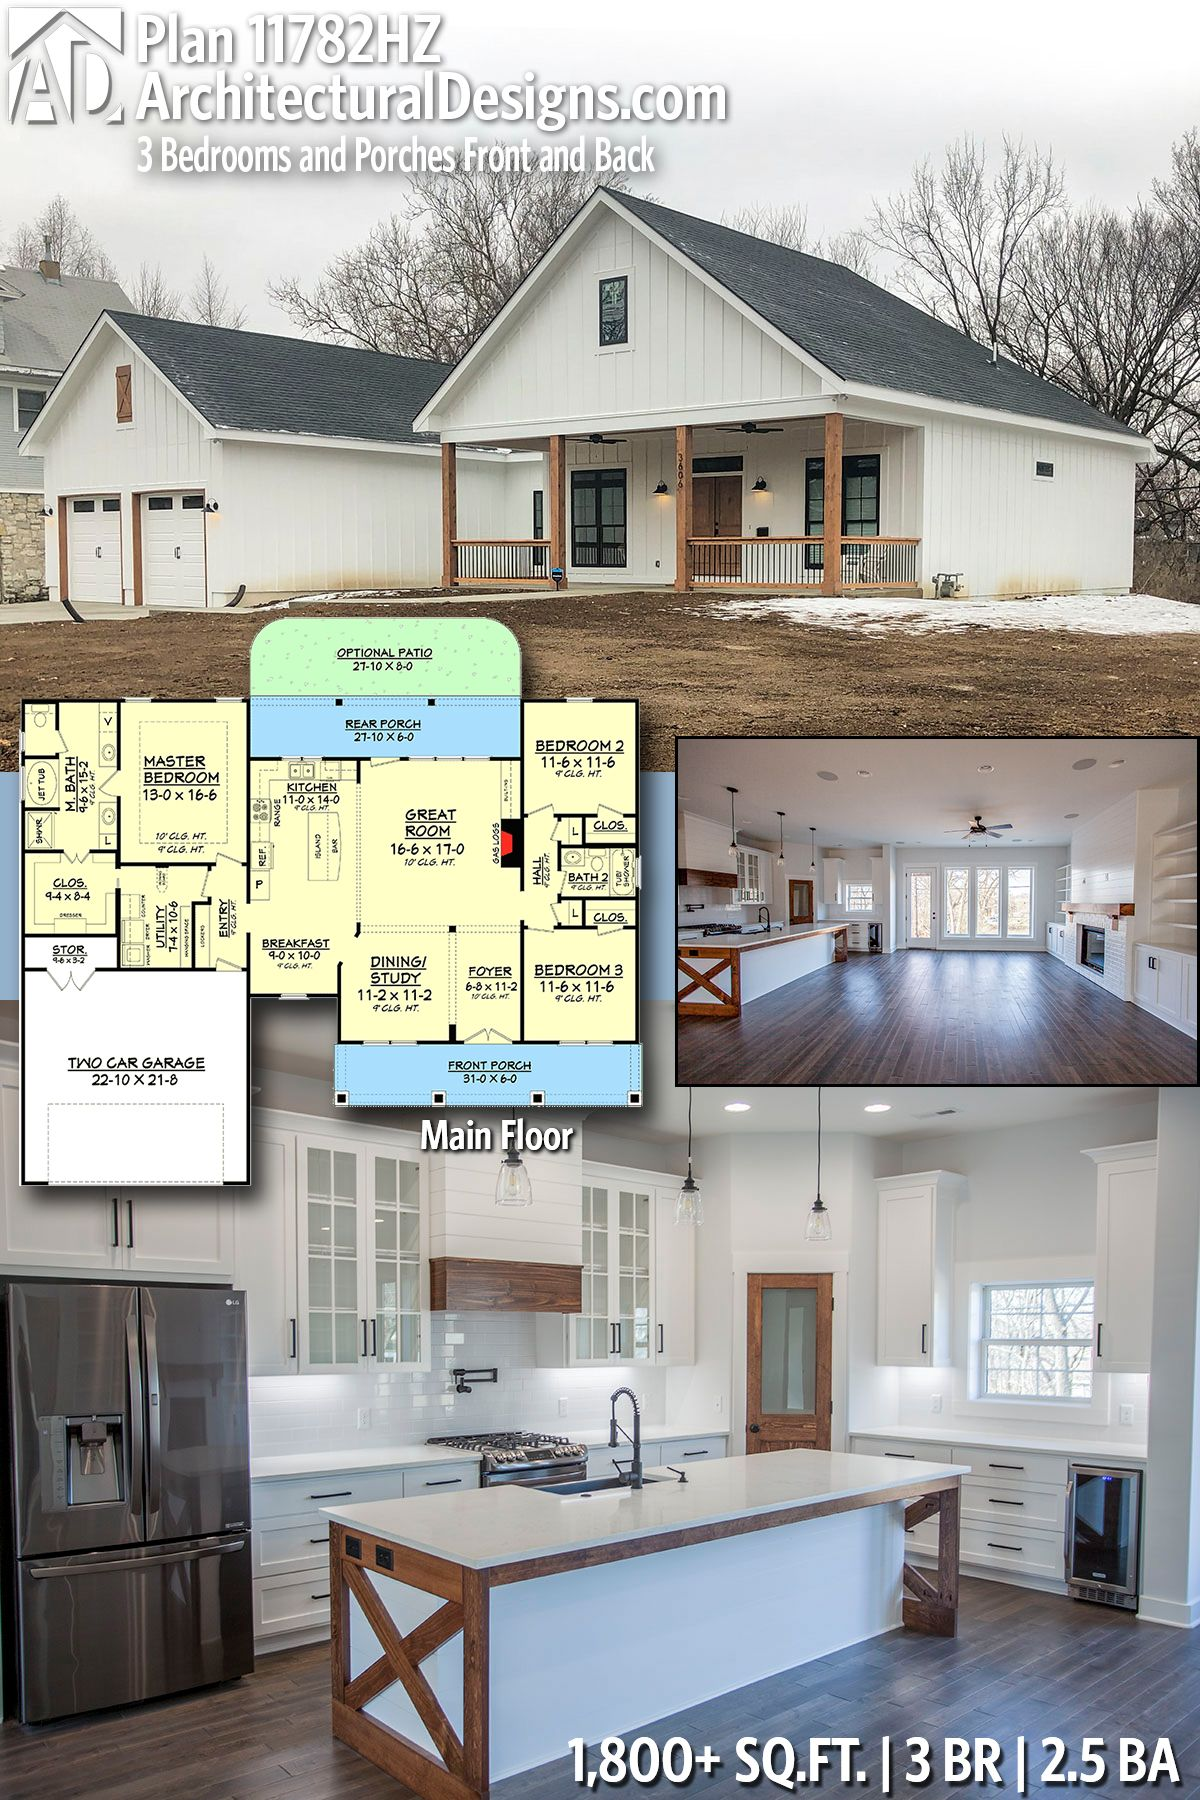 Plan 11782hz 3 Bedrooms And Porches Front And Back House Plans Barn House Plans House Plans Farmhouse